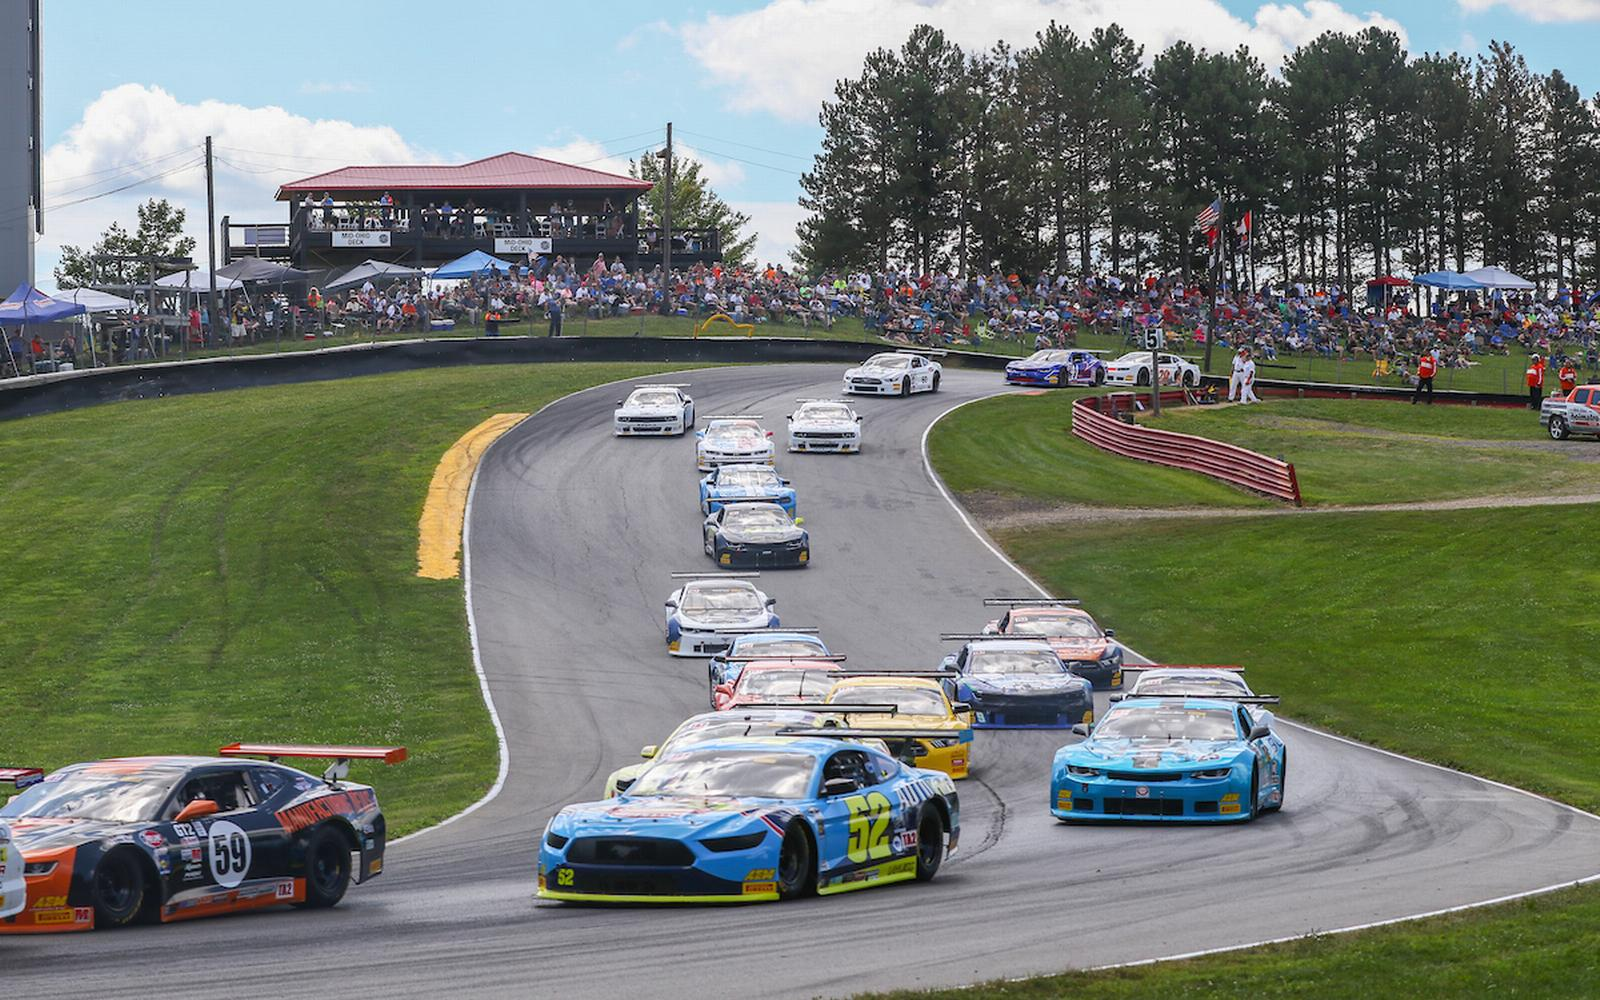 Trans Am Returns to Live Action Racing at Mid-Ohio